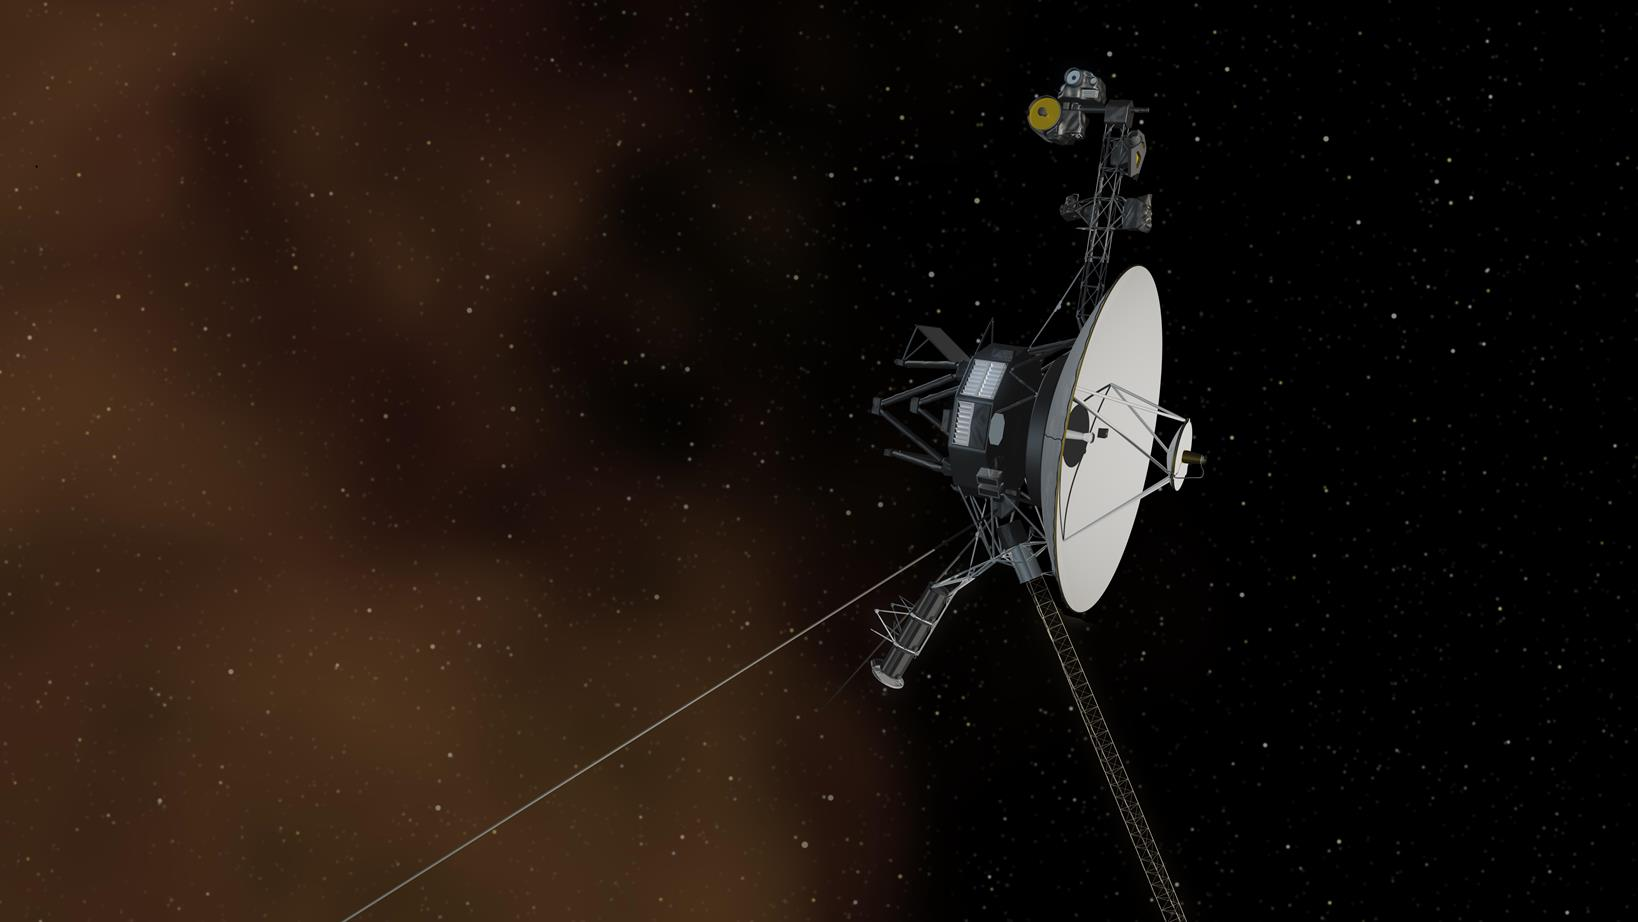 NASA Voyager 2 spacecraft image credit NASA JPL